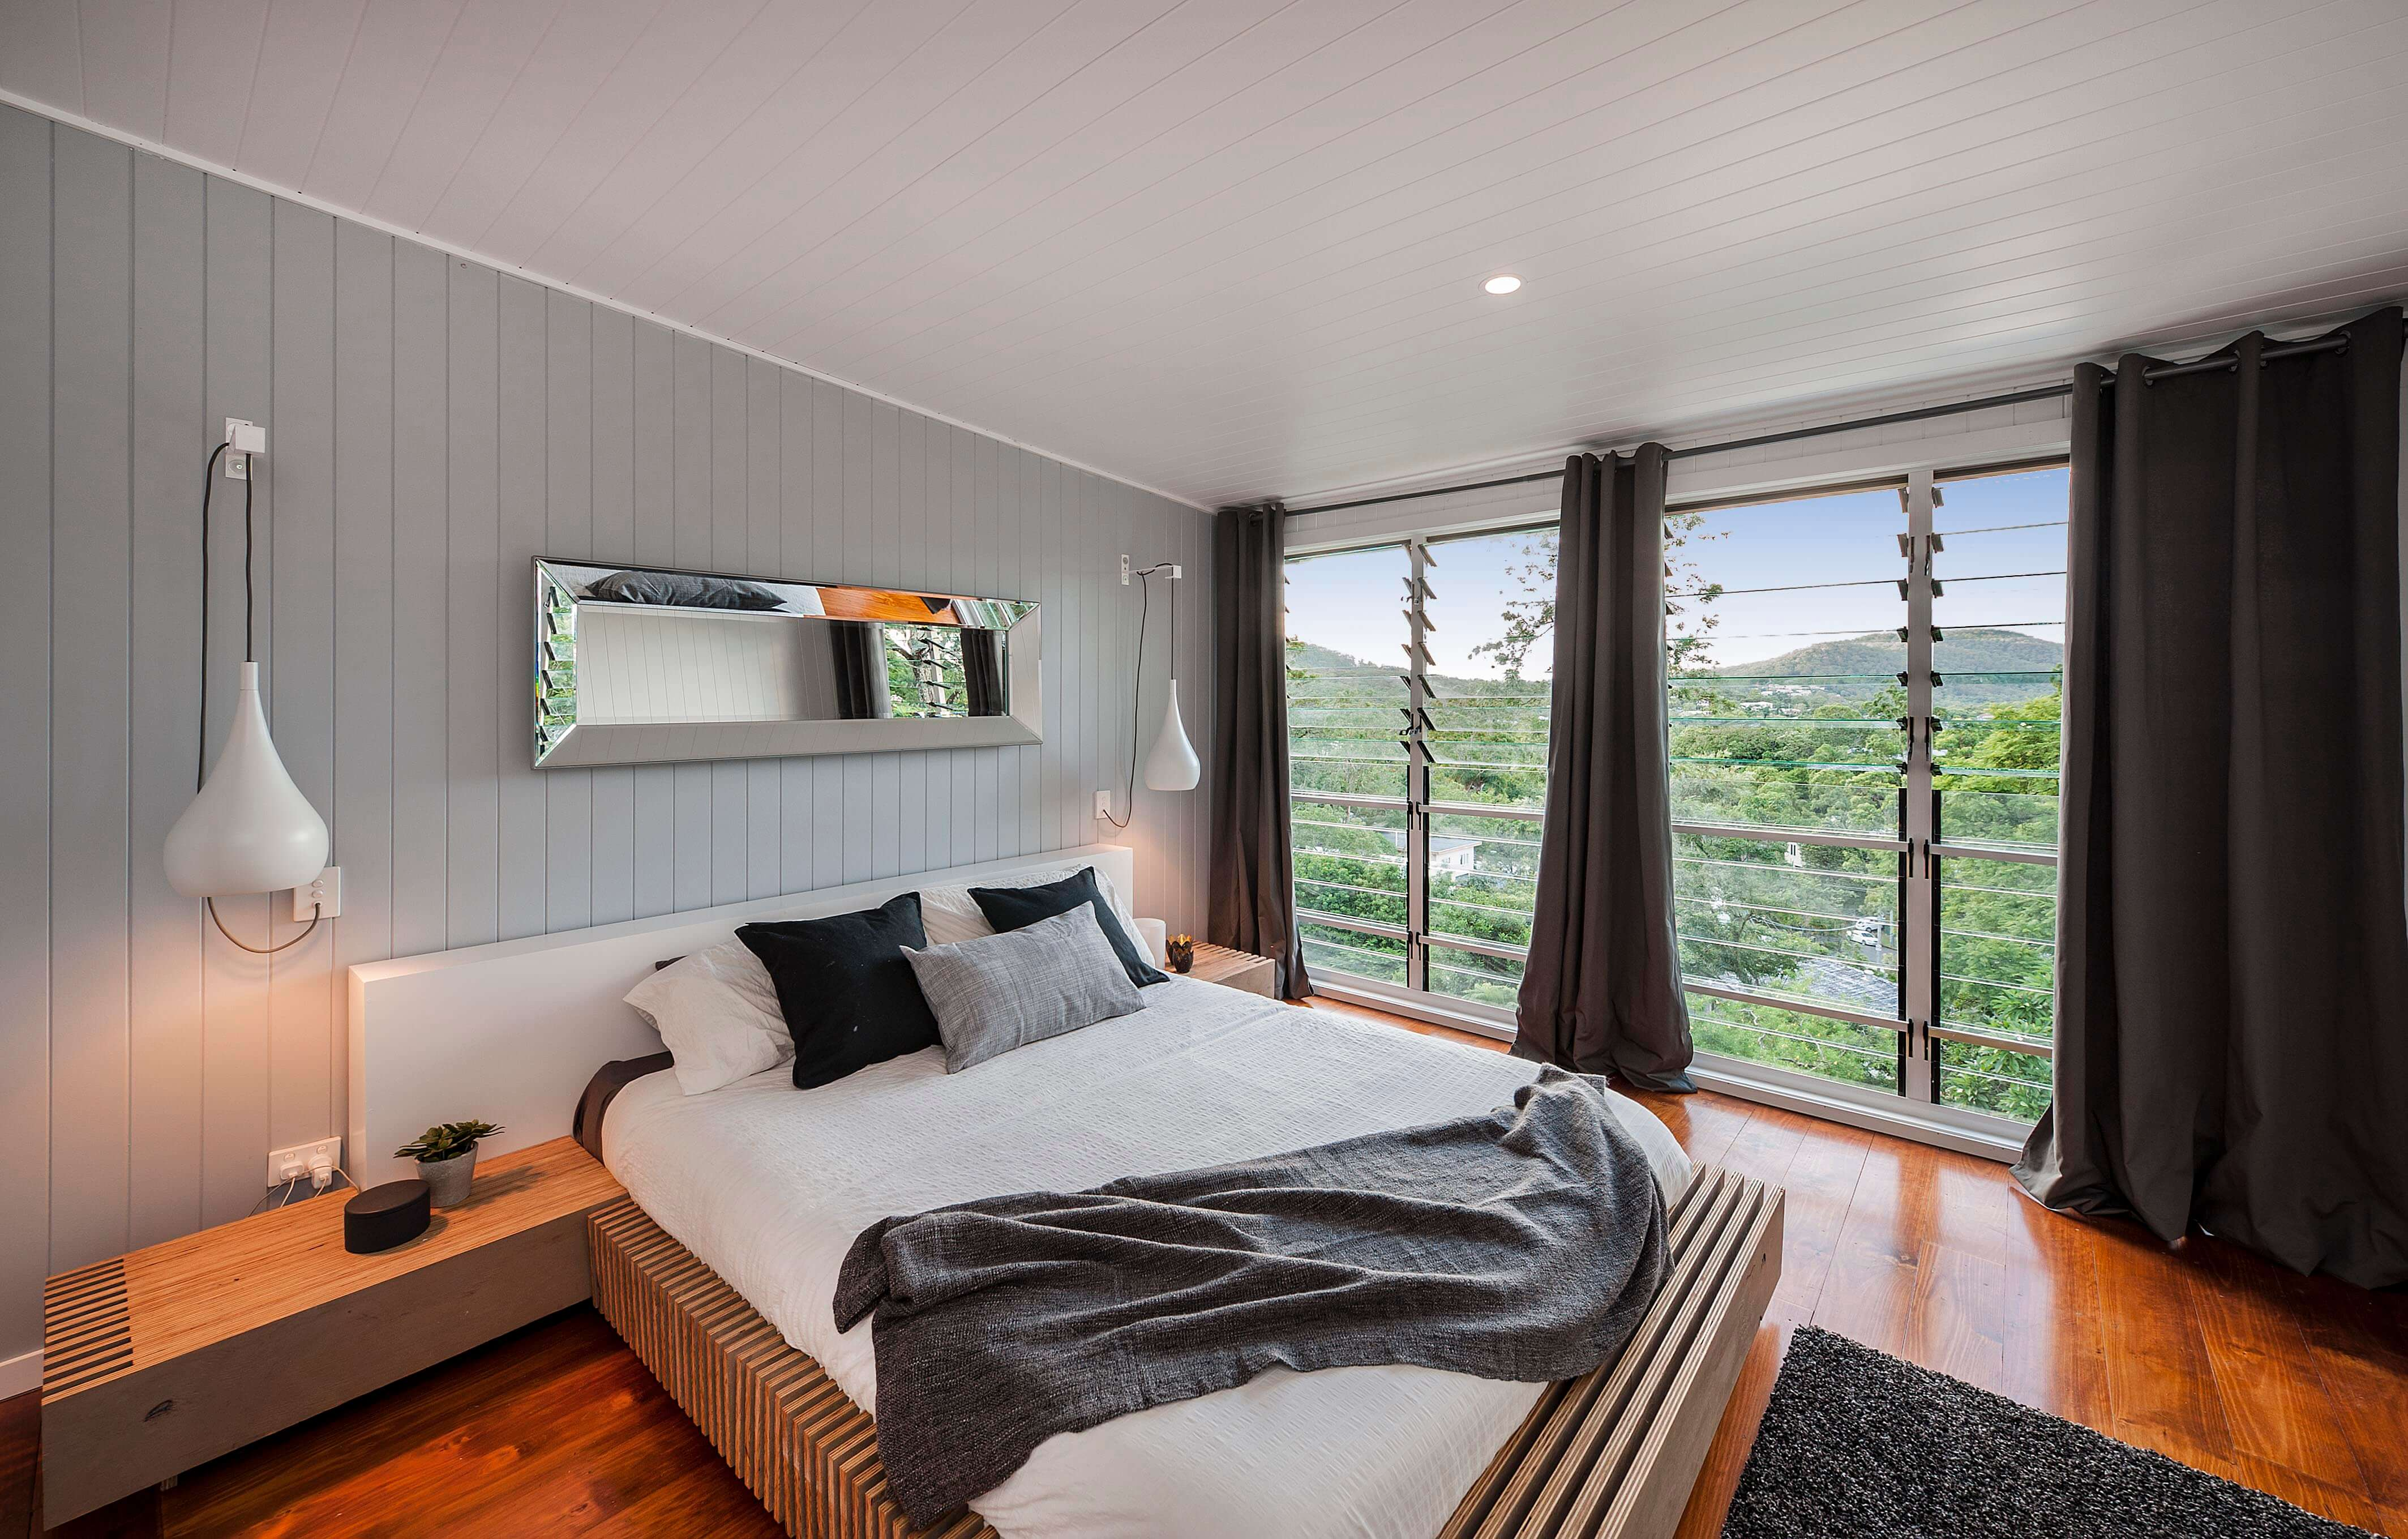 Spacious bedroom with views